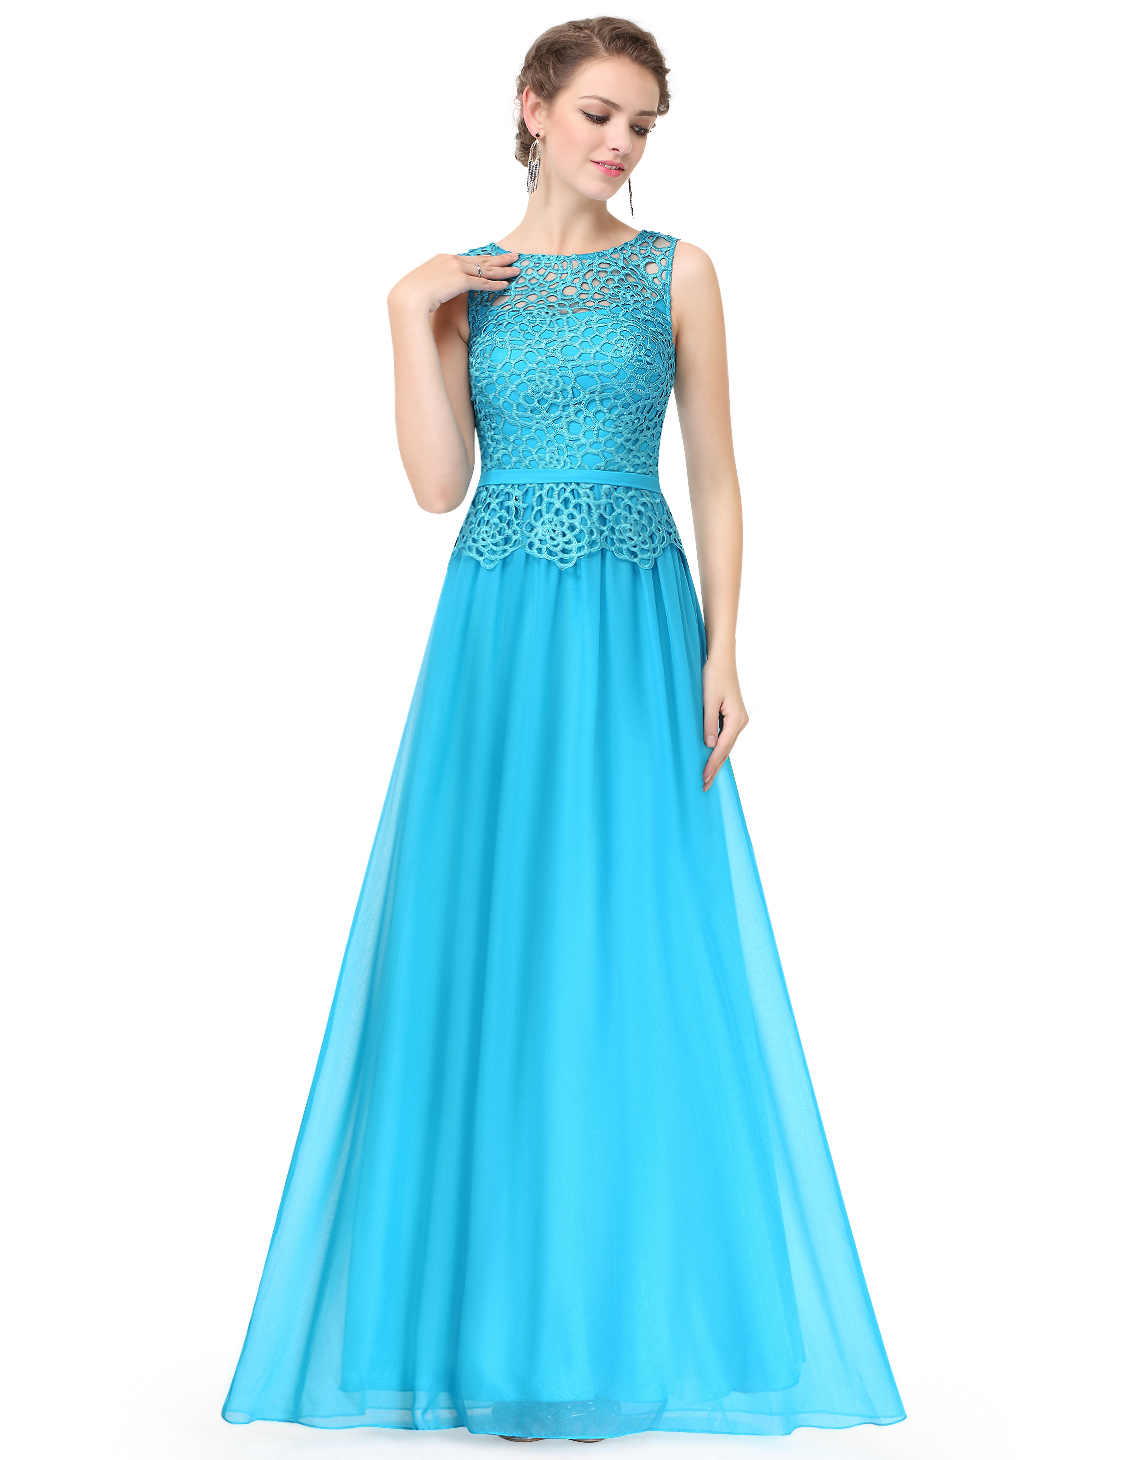 Long Bridesmaid Wedding Party Dresses Evening Party Prom Gowns 08904 ...